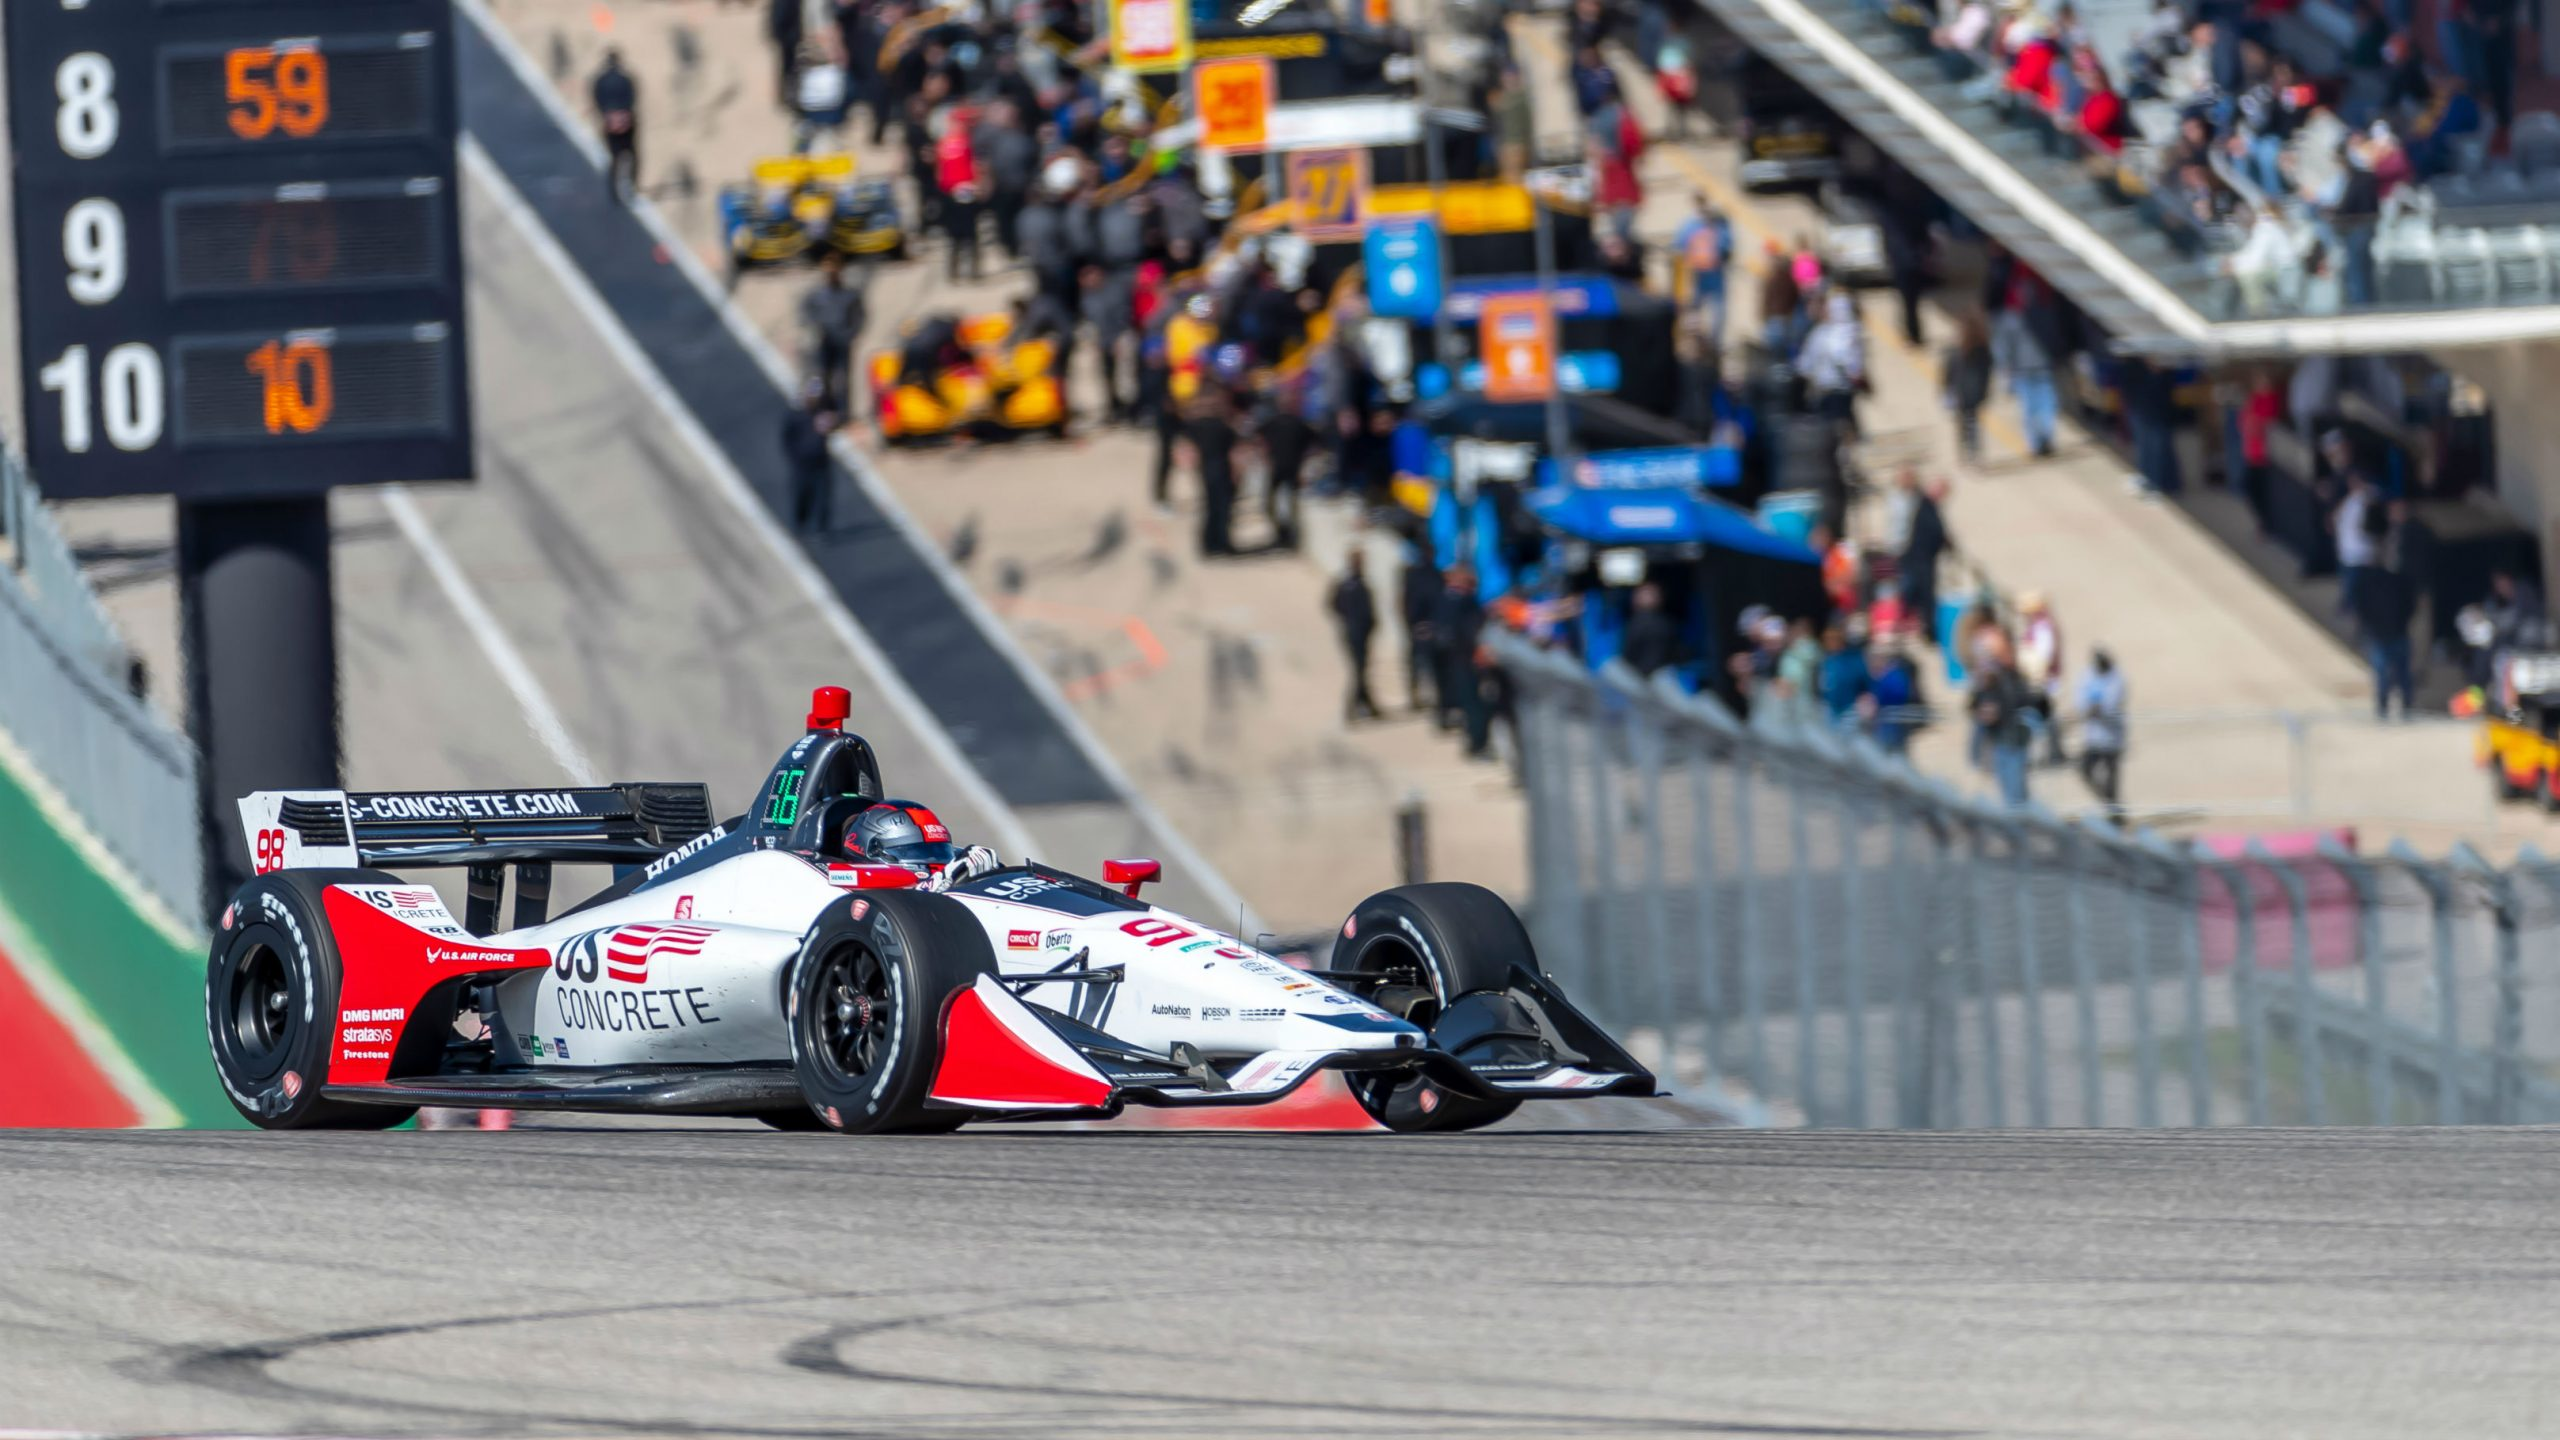 IndyCar races available on free TV